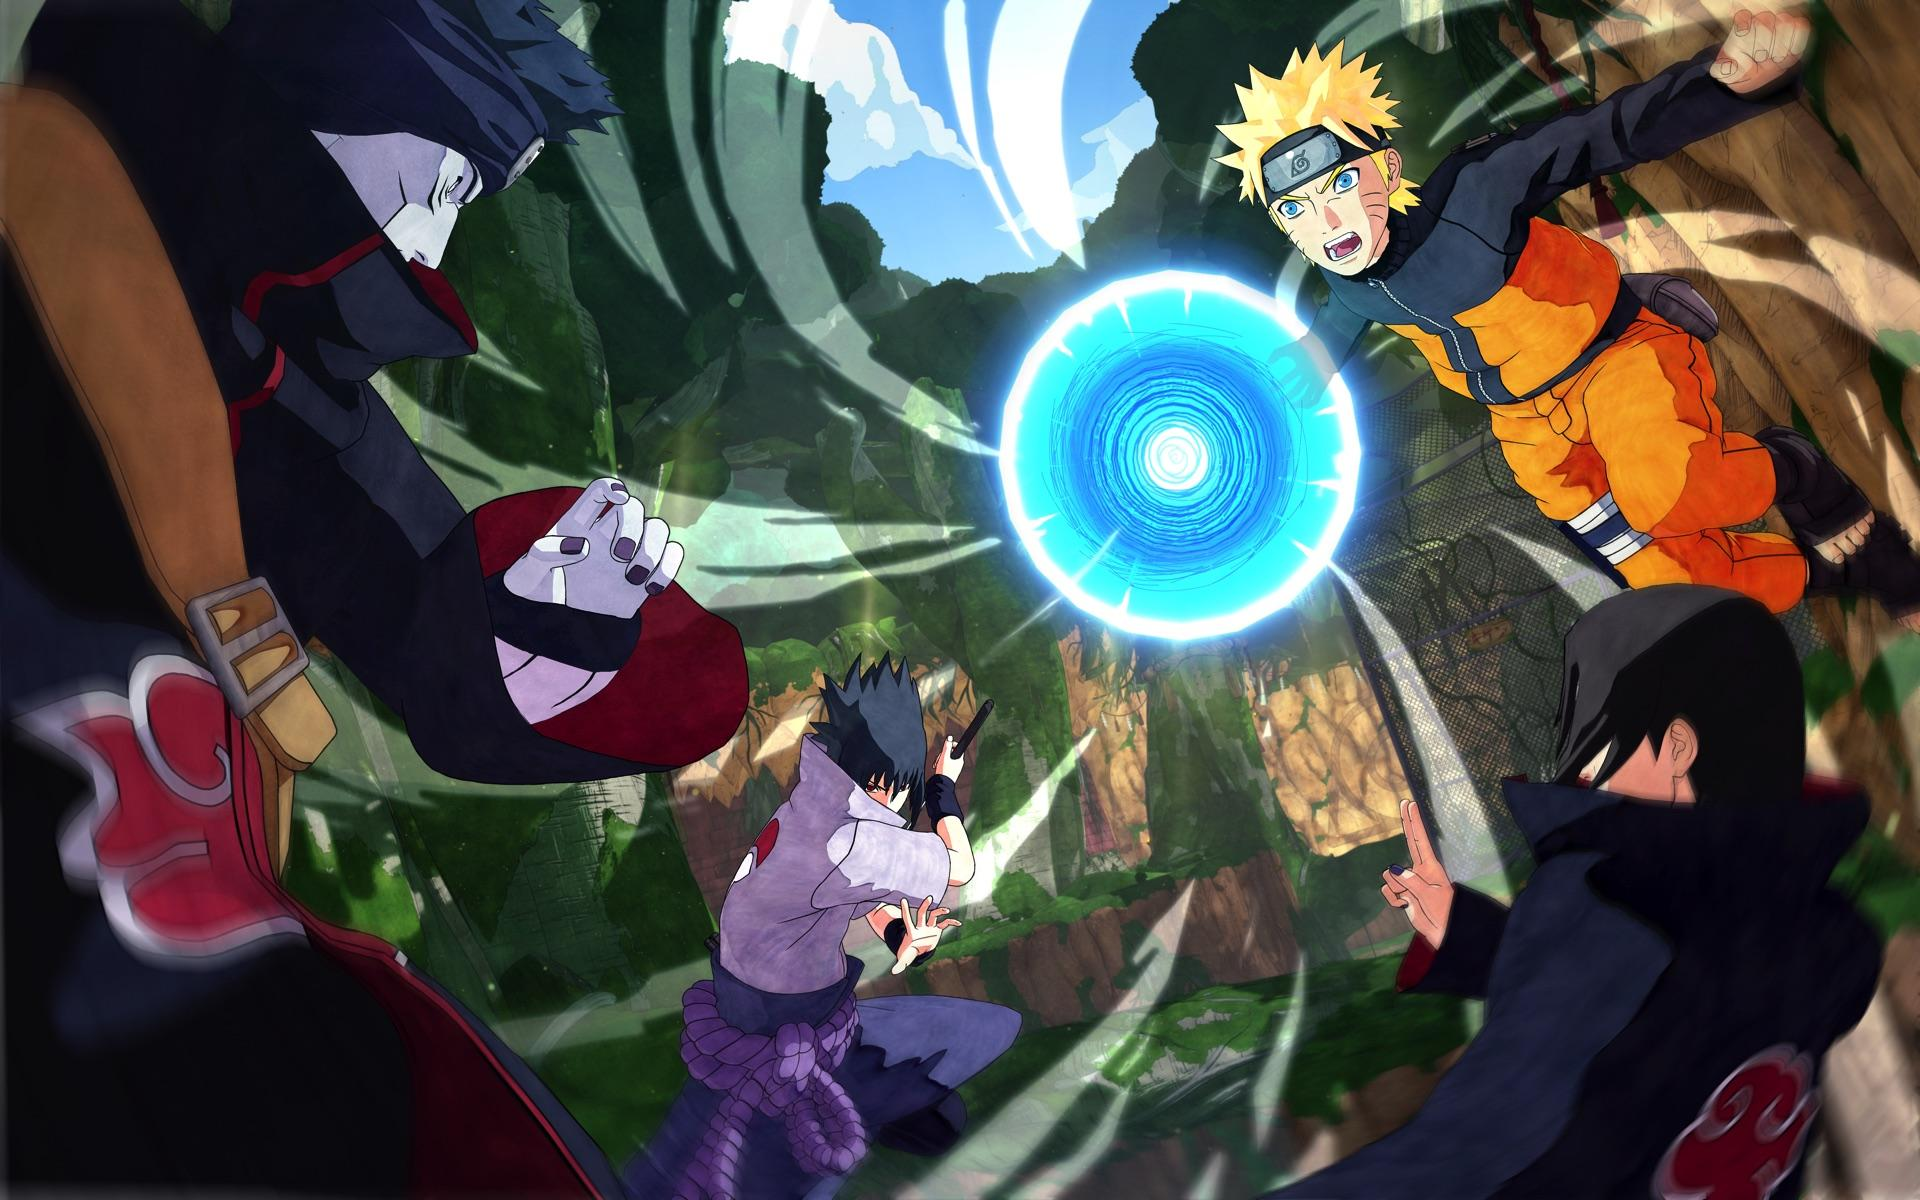 Sta per partire l'open beta  di Naruto to Boruto: Shinobi Striker